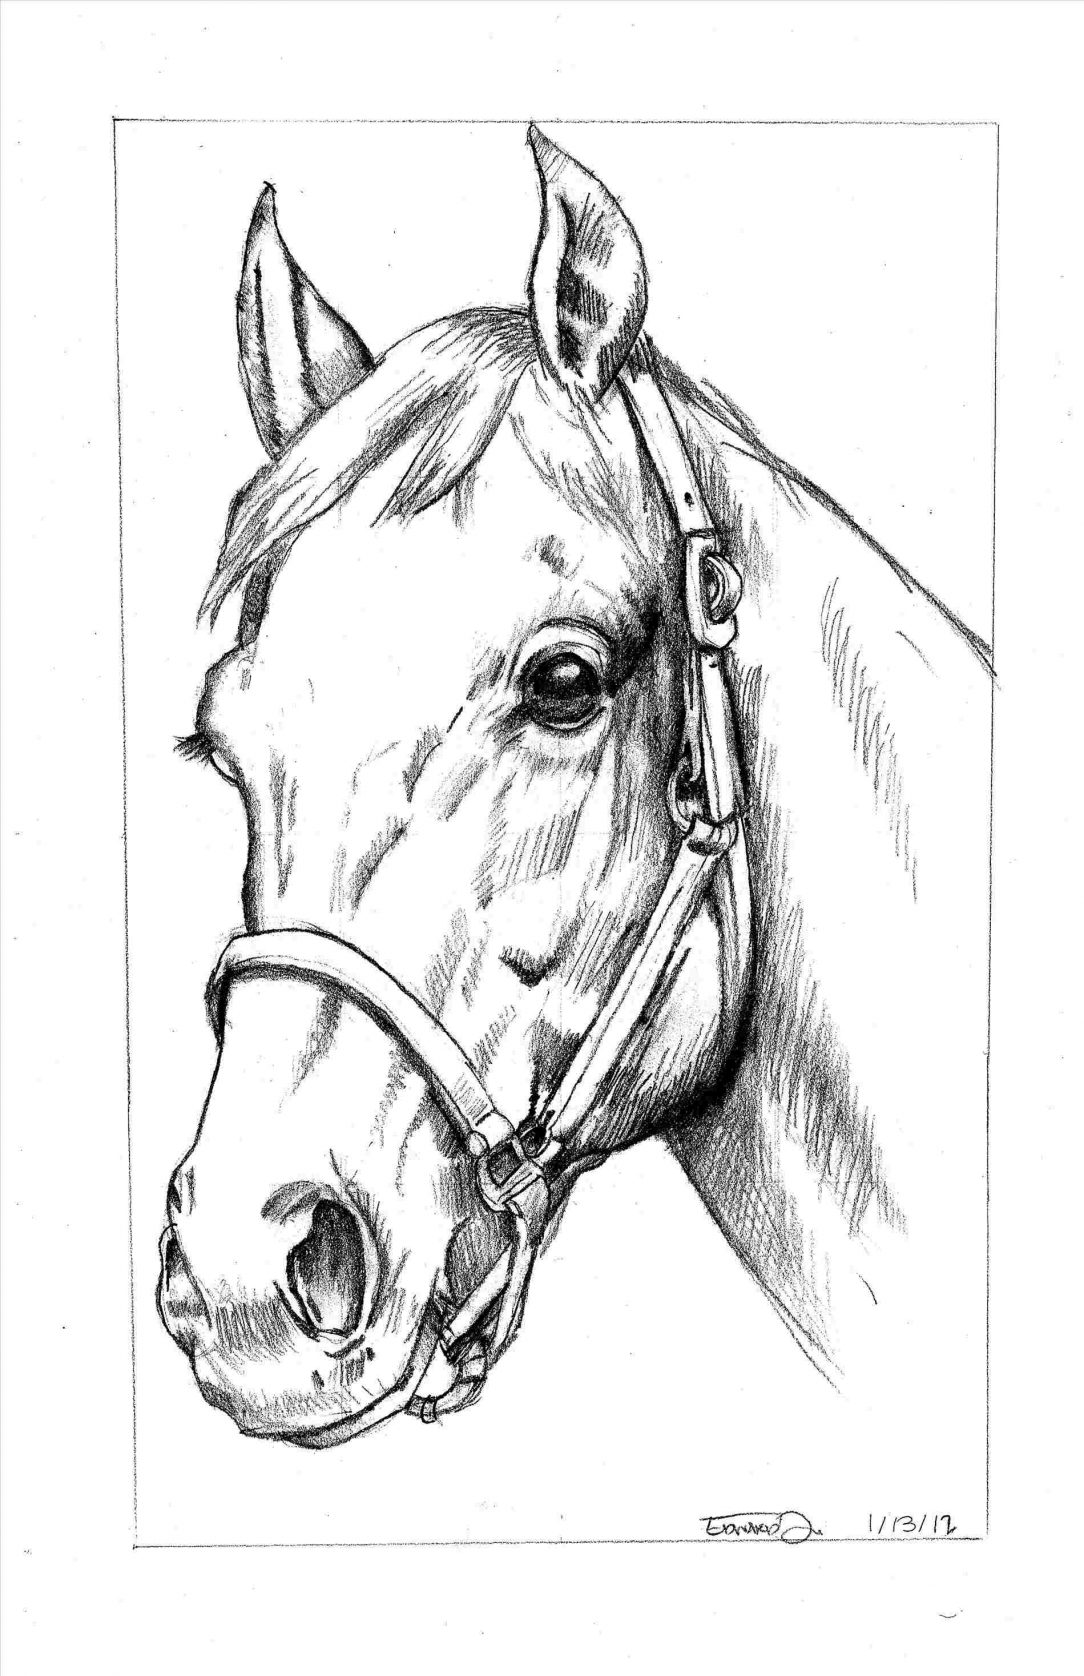 How To Draw A Horse Tutorials That Beginners Should Check Out